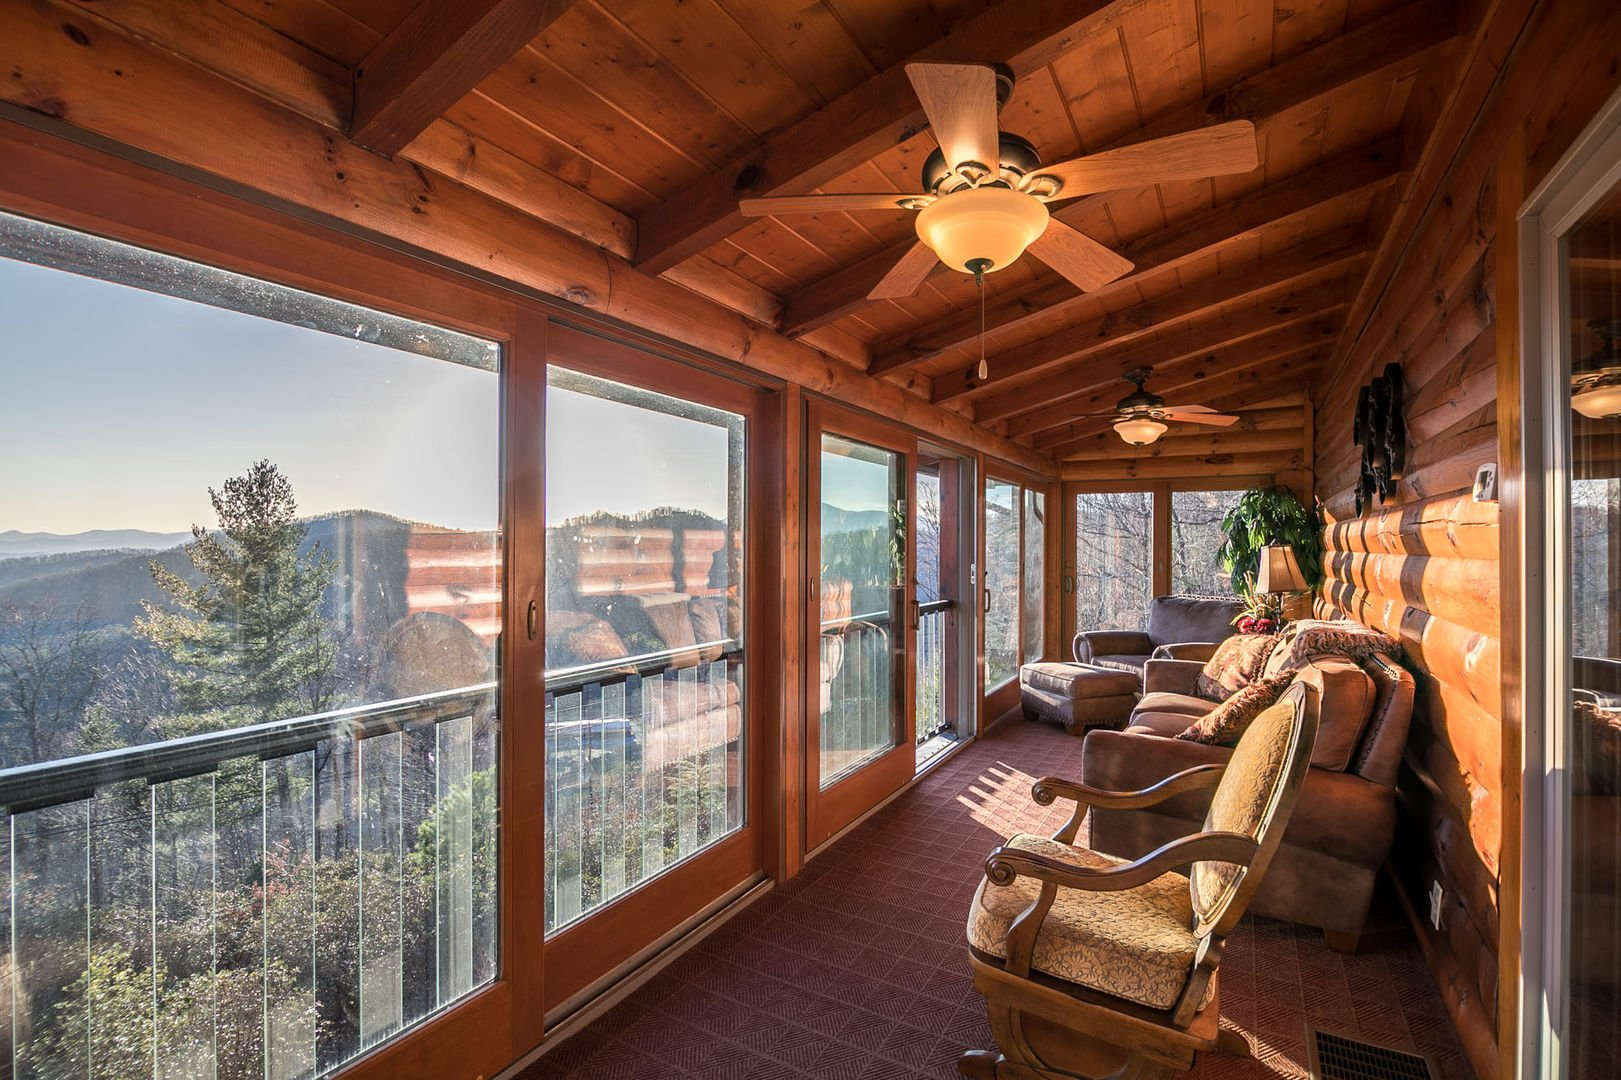 Screened in porch overlooking the mountains